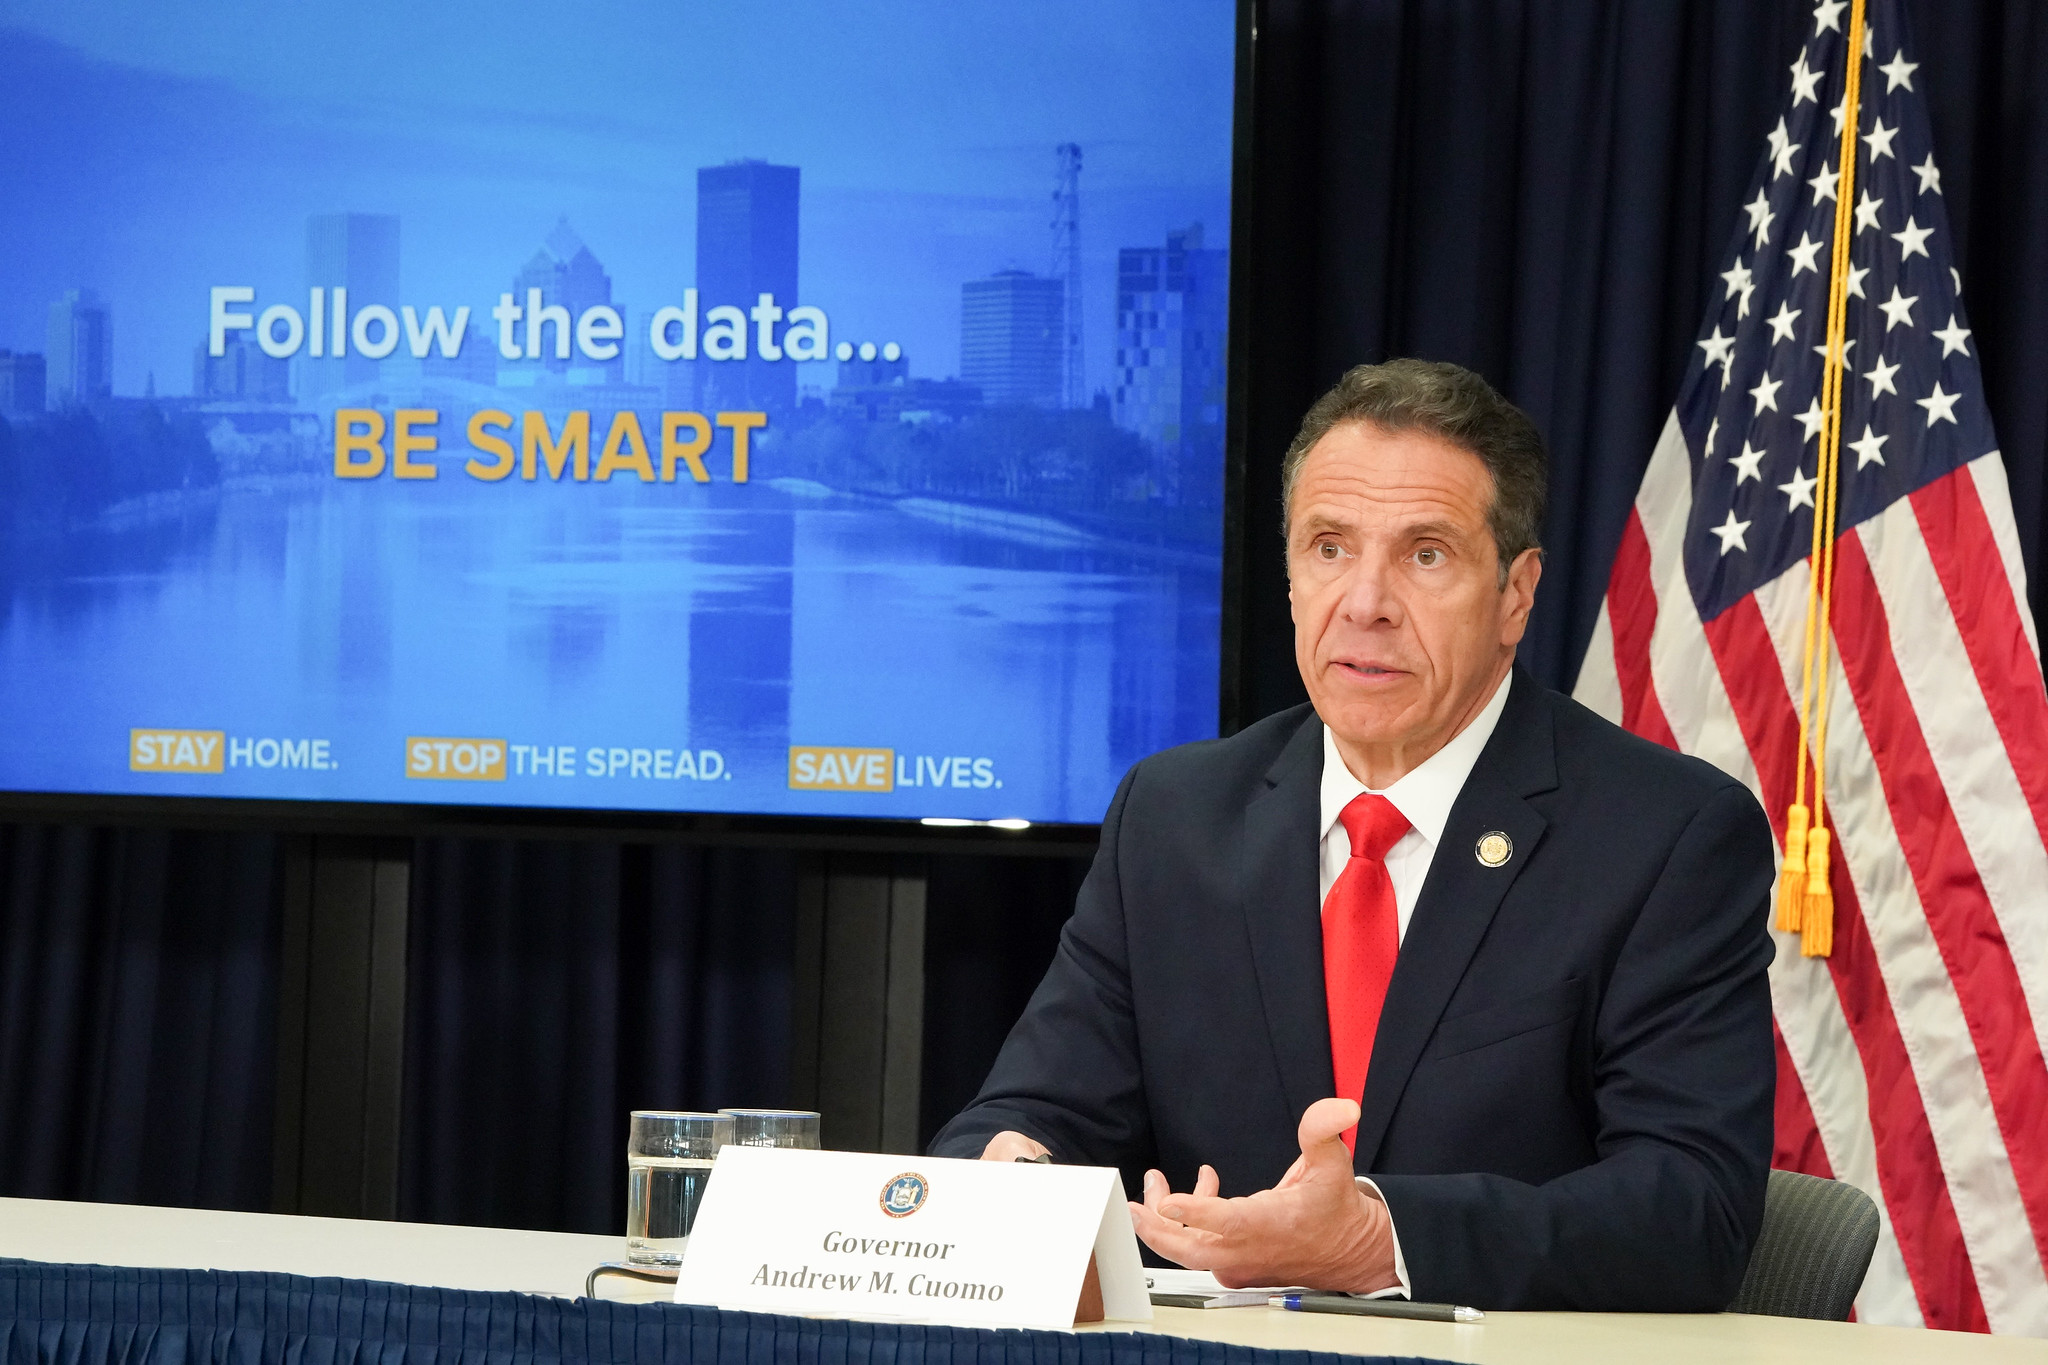 Governor Andrew M. Cuomo delivers briefing on Coronavirus pandemic, May 5th, 2020